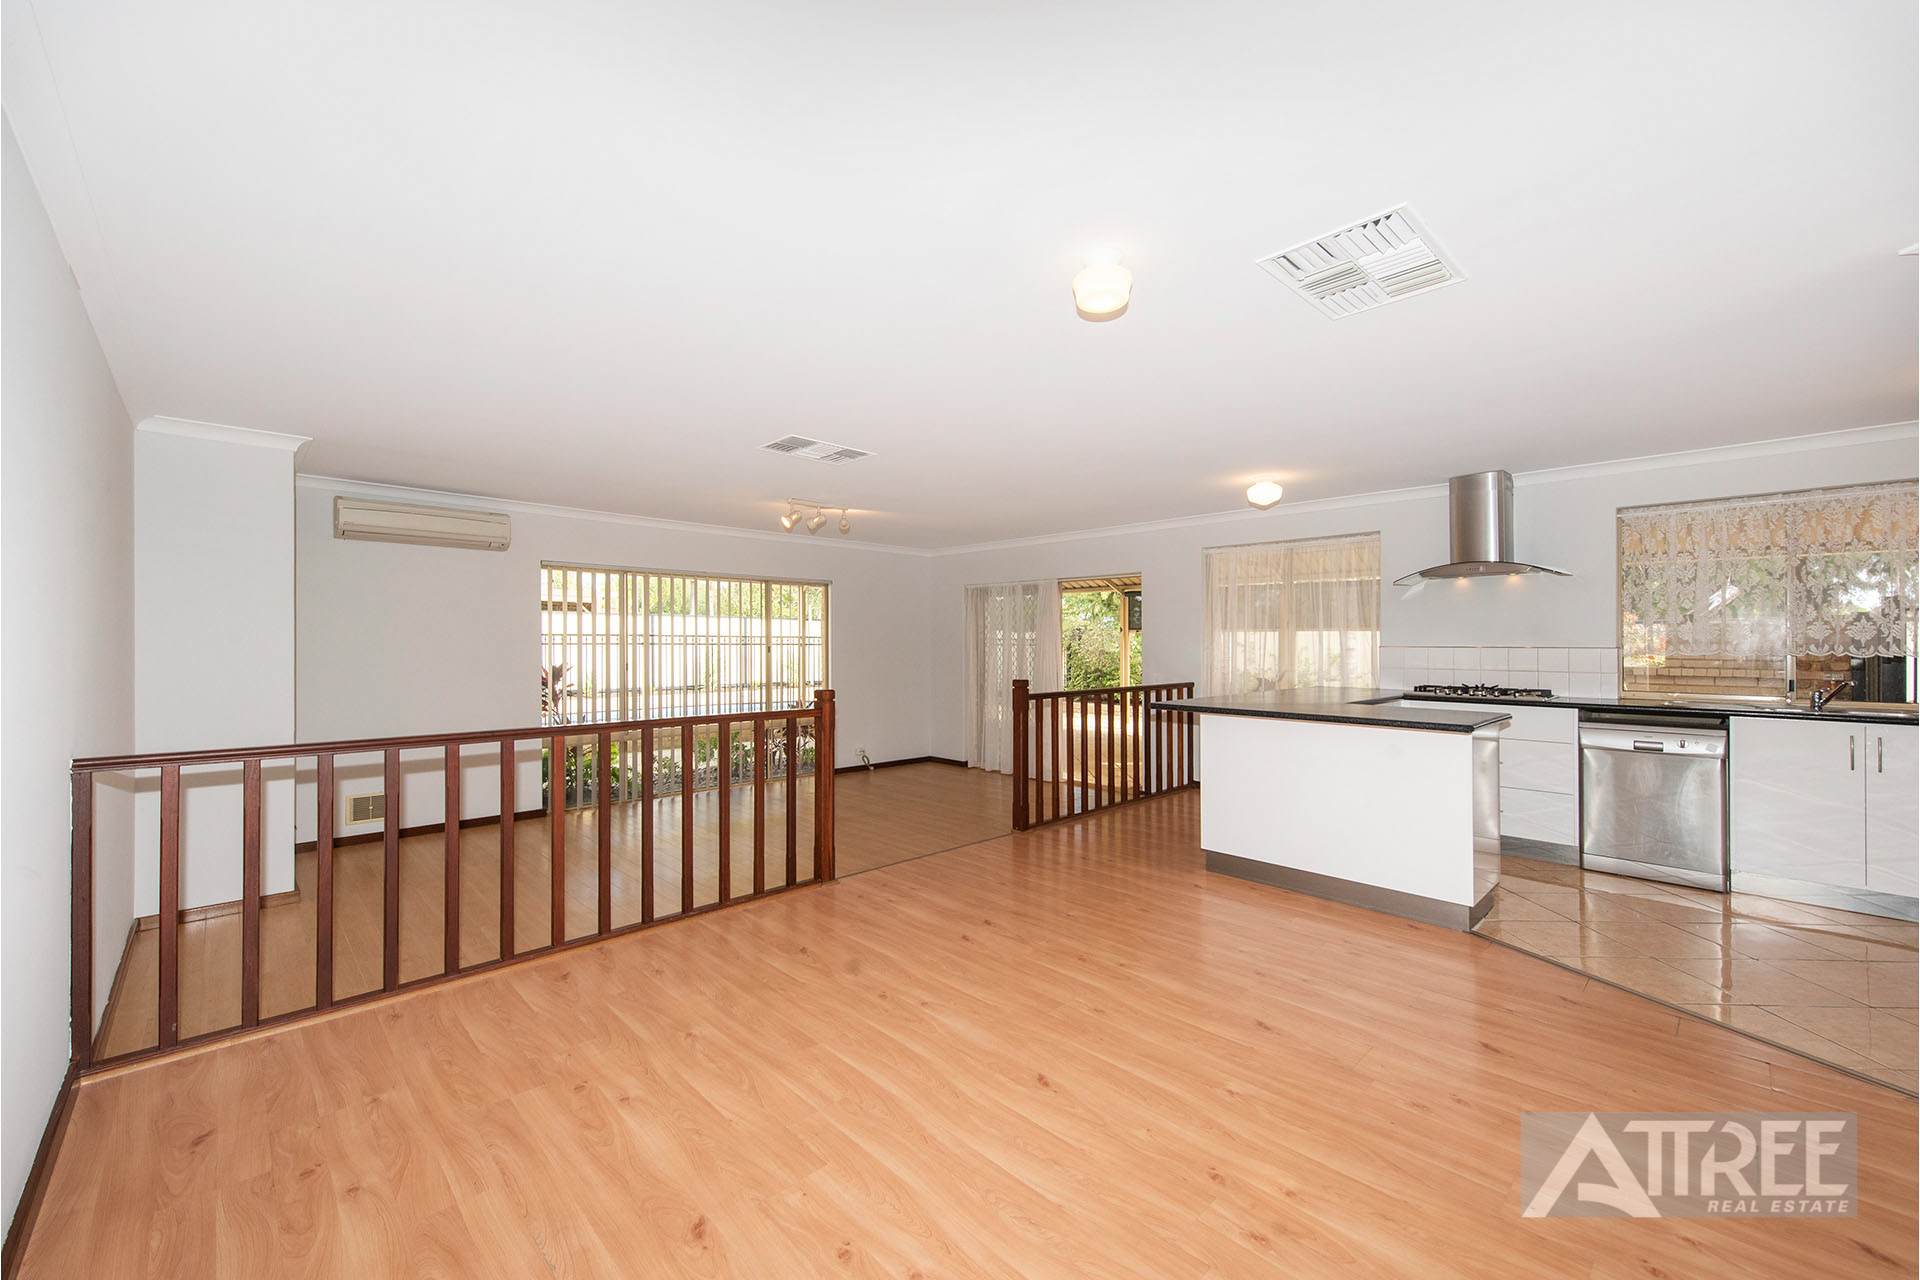 Property for sale in THORNLIE, 1 Boronia Court : Attree Real Estate